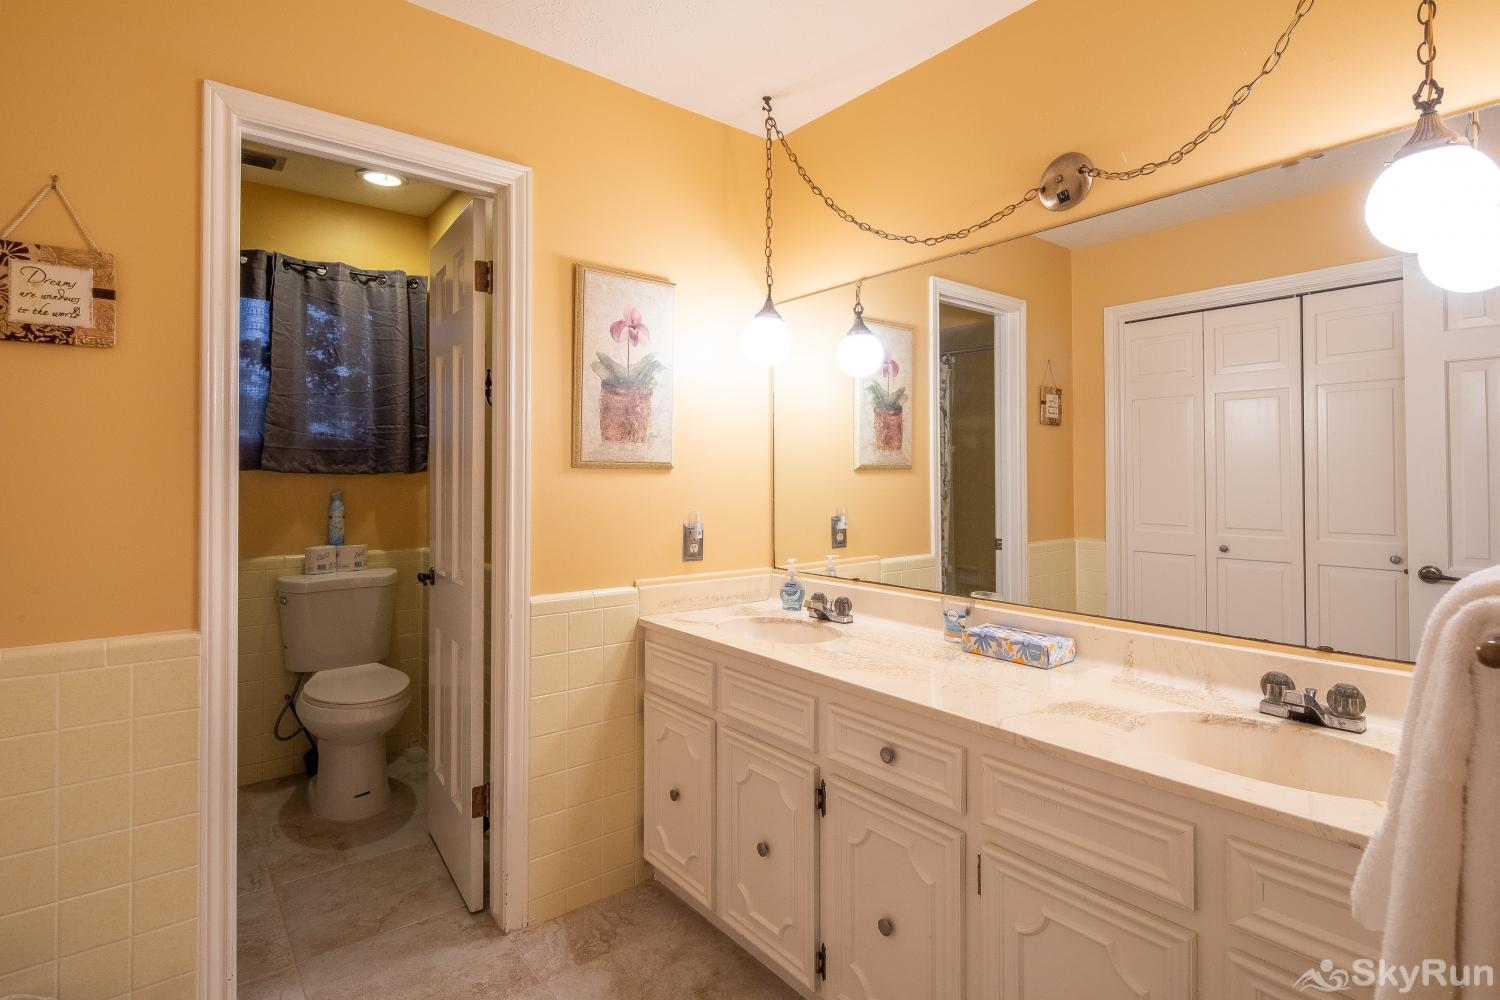 VALLEY VIEW Second full bathroom